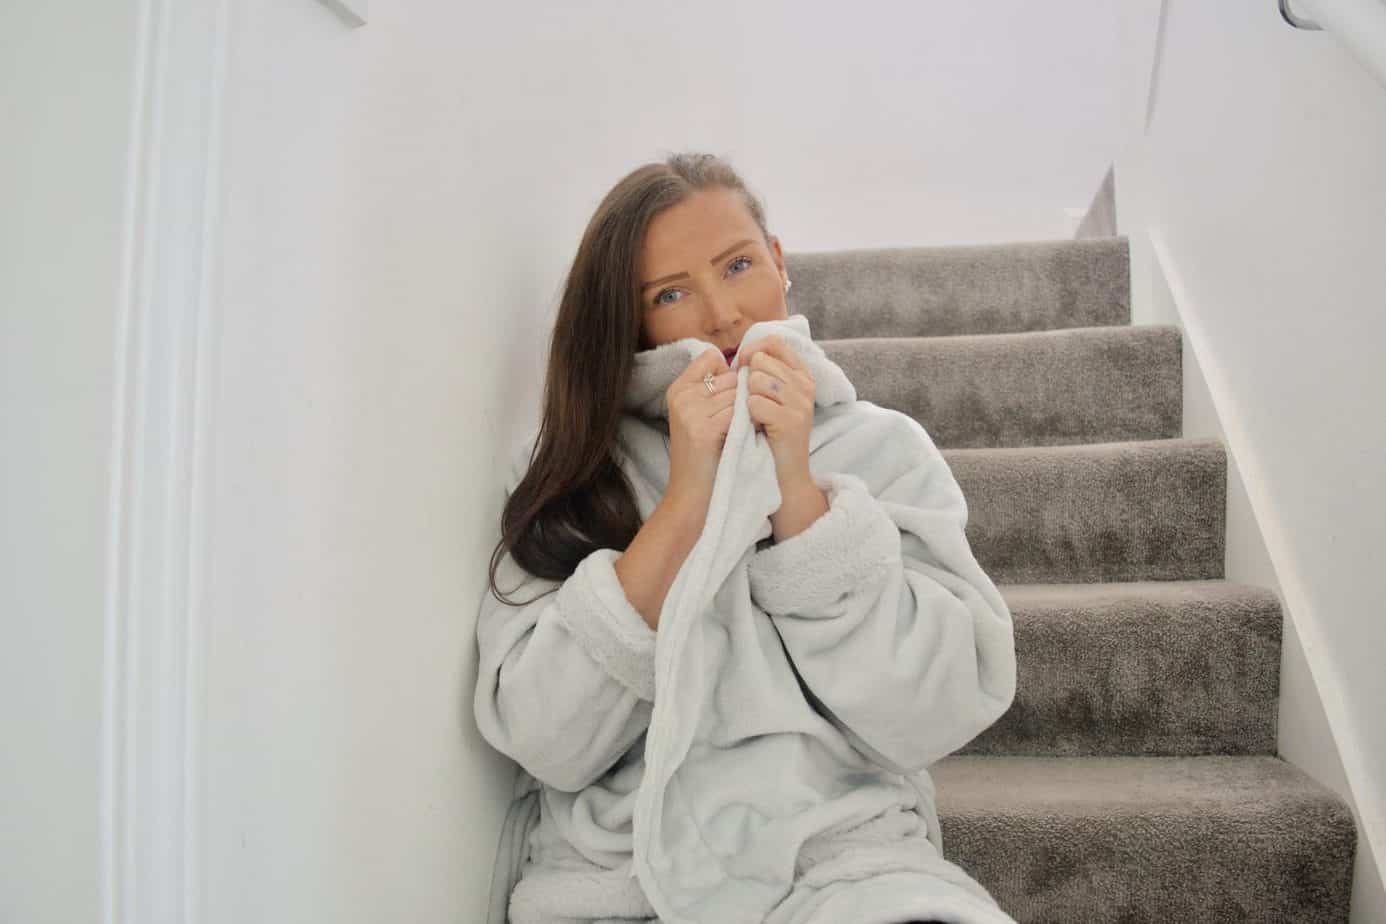 Grey Soft fluffy dressing gown lockdown loungewear